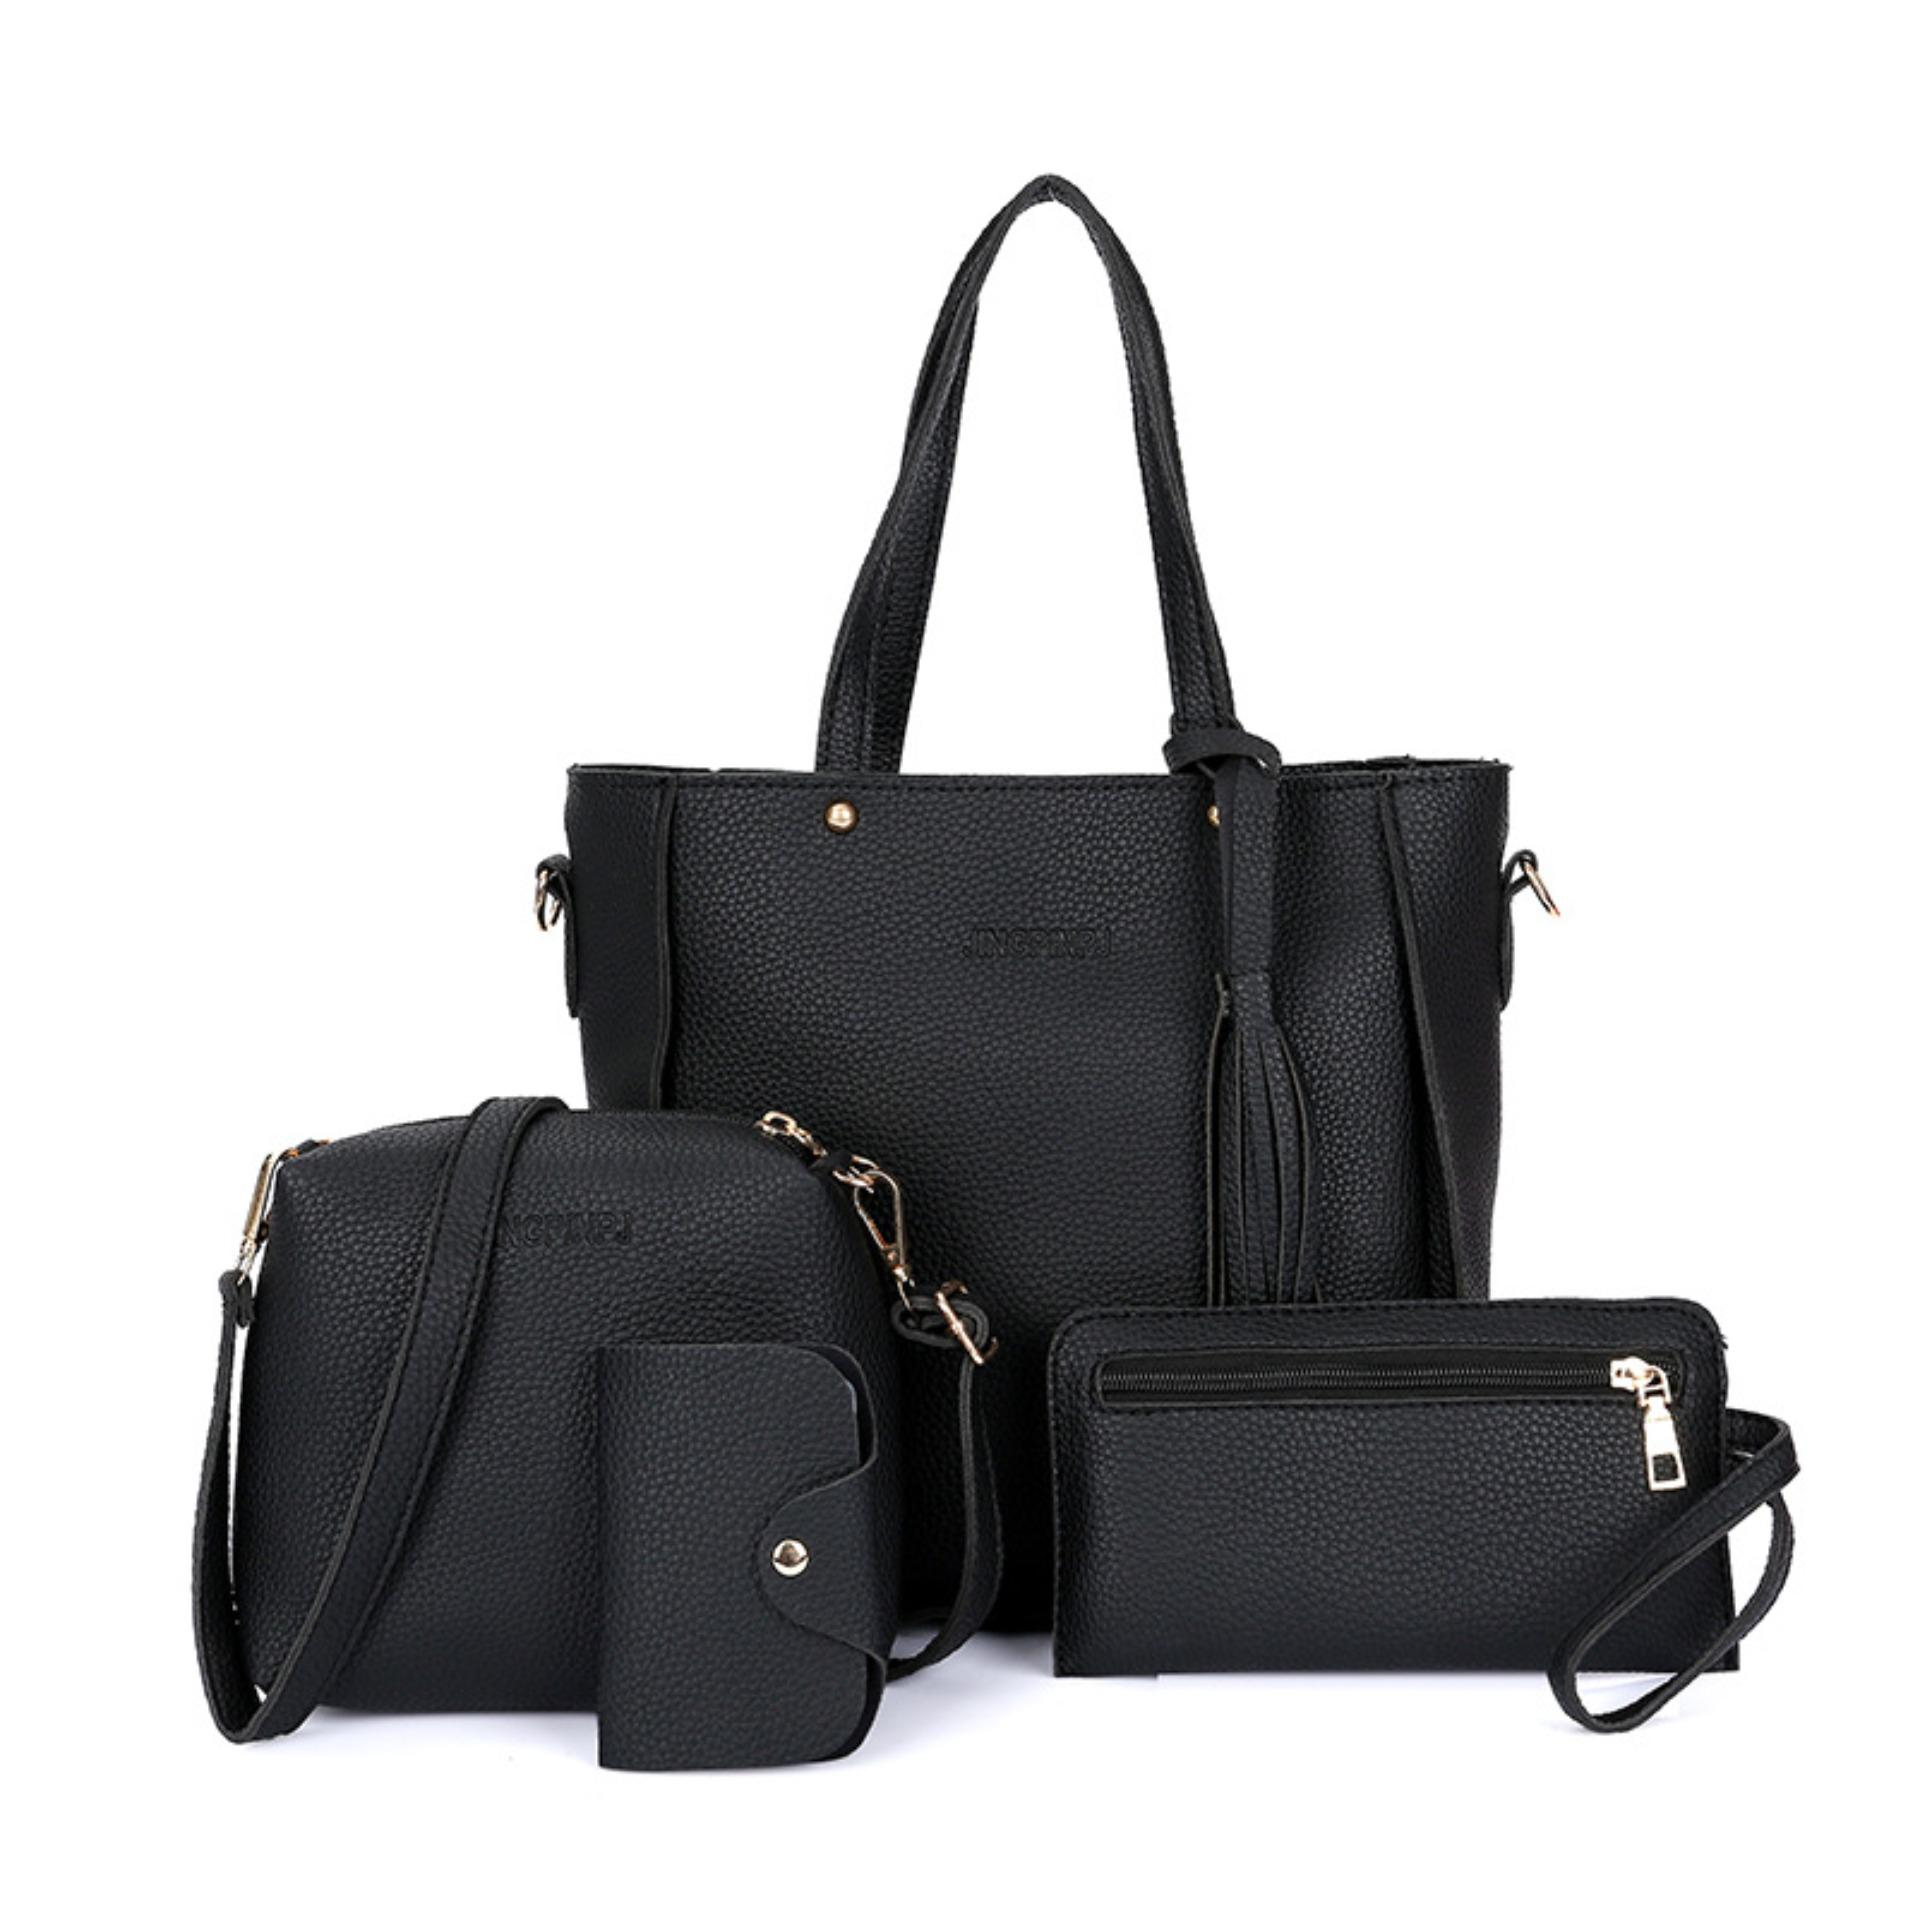 ea9180bf5a13 Bags for Women for sale - Womens Bags online brands